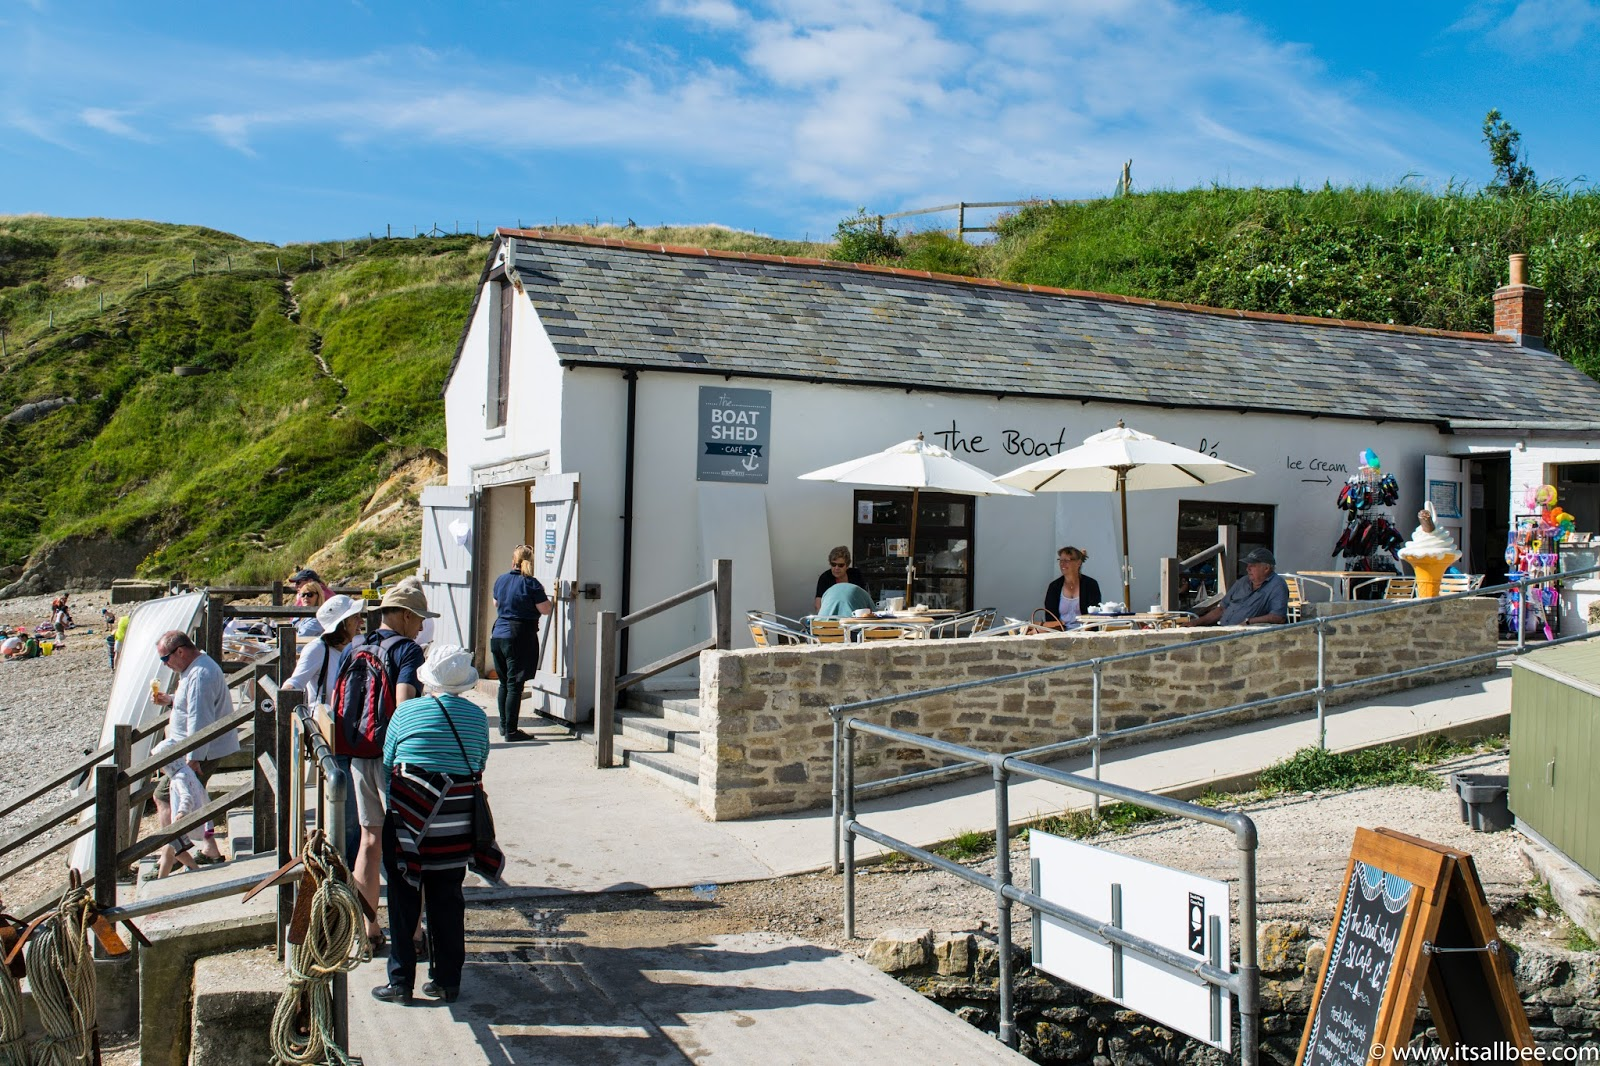 lulworth cove walks in Dorset England | lulworth cove cafe